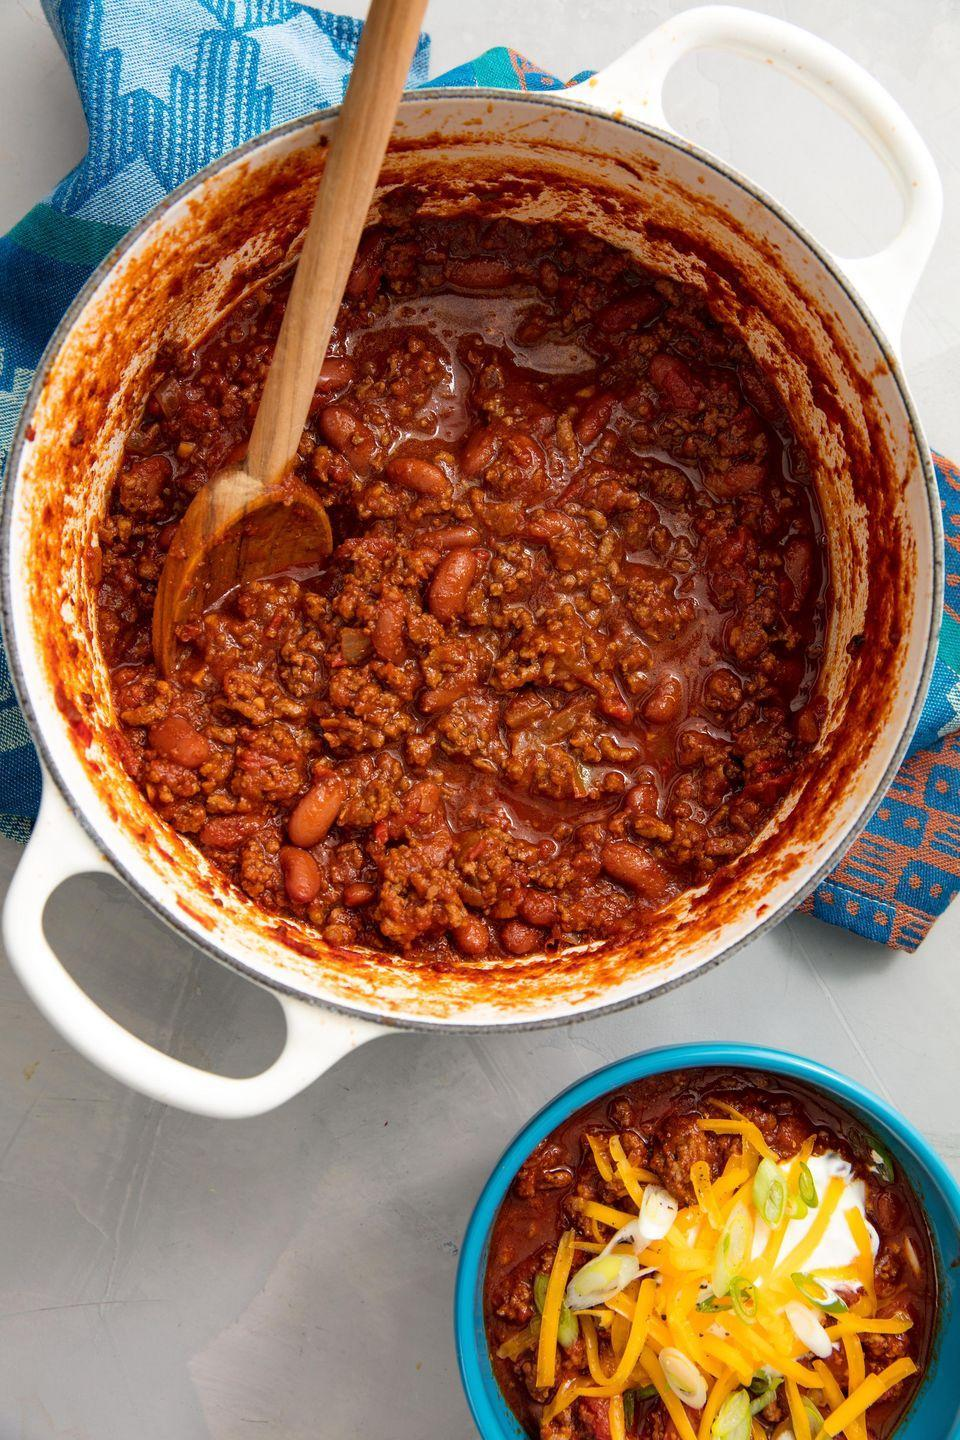 """<p>You can't beat a classic.</p><p>Get the recipe from <a href=""""https://www.delish.com/cooking/recipe-ideas/recipes/a58253/best-homemade-chili-recipe/"""" rel=""""nofollow noopener"""" target=""""_blank"""" data-ylk=""""slk:Delish"""" class=""""link rapid-noclick-resp"""">Delish</a>. </p>"""